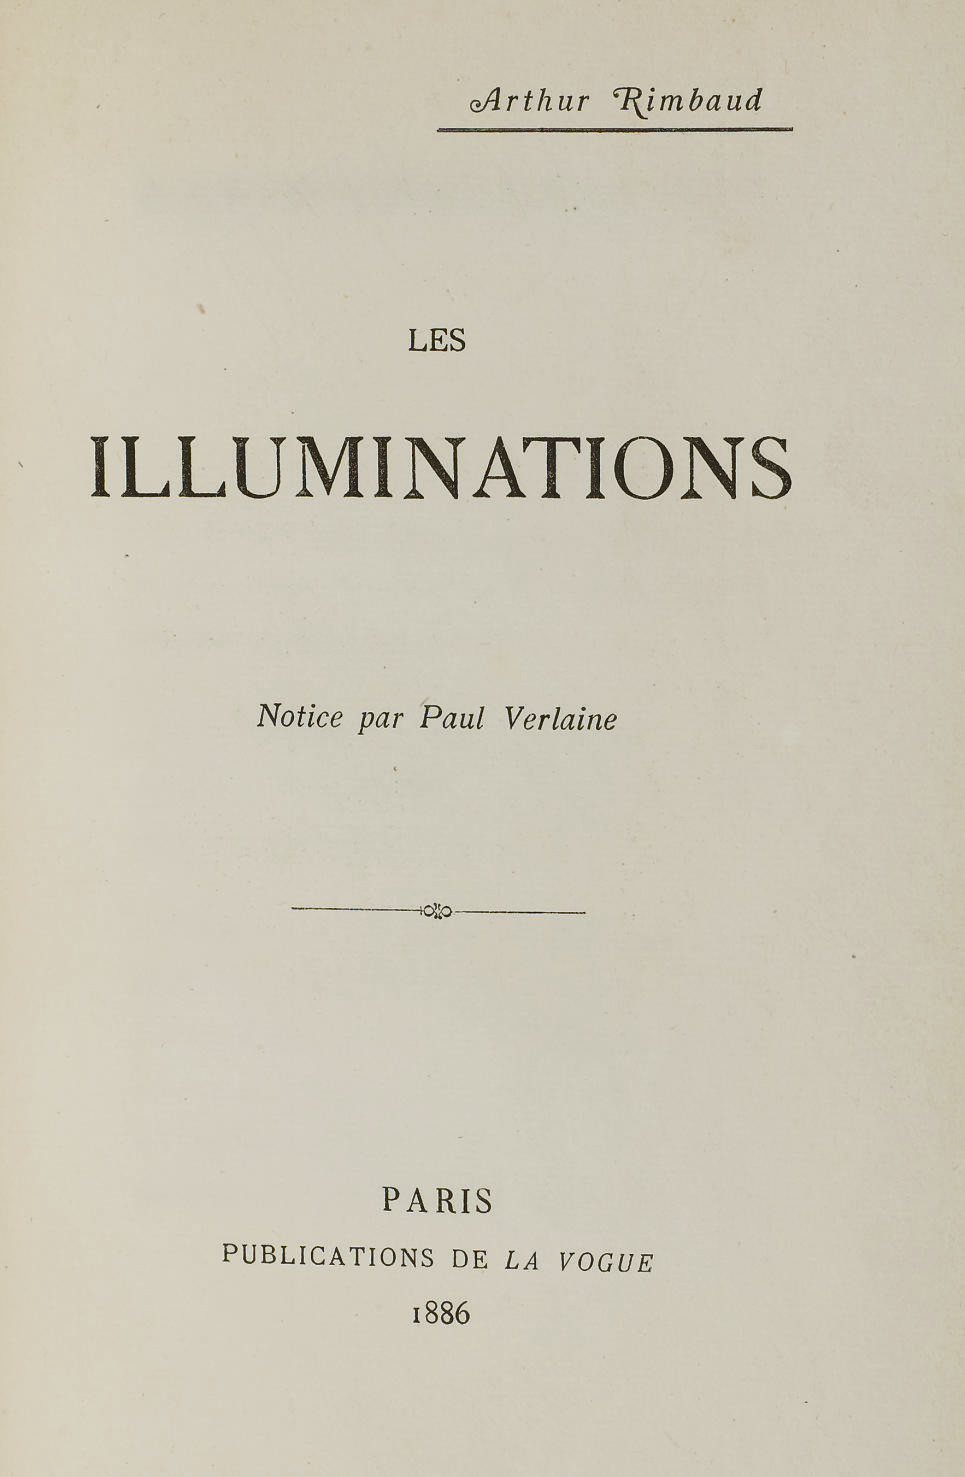 RIMBAUD, Arthur (1854-1891). Les Illuminations. Notice par Paul Verlaine. Paris: A. Retaux pour Publications de La Vogue, 1886.